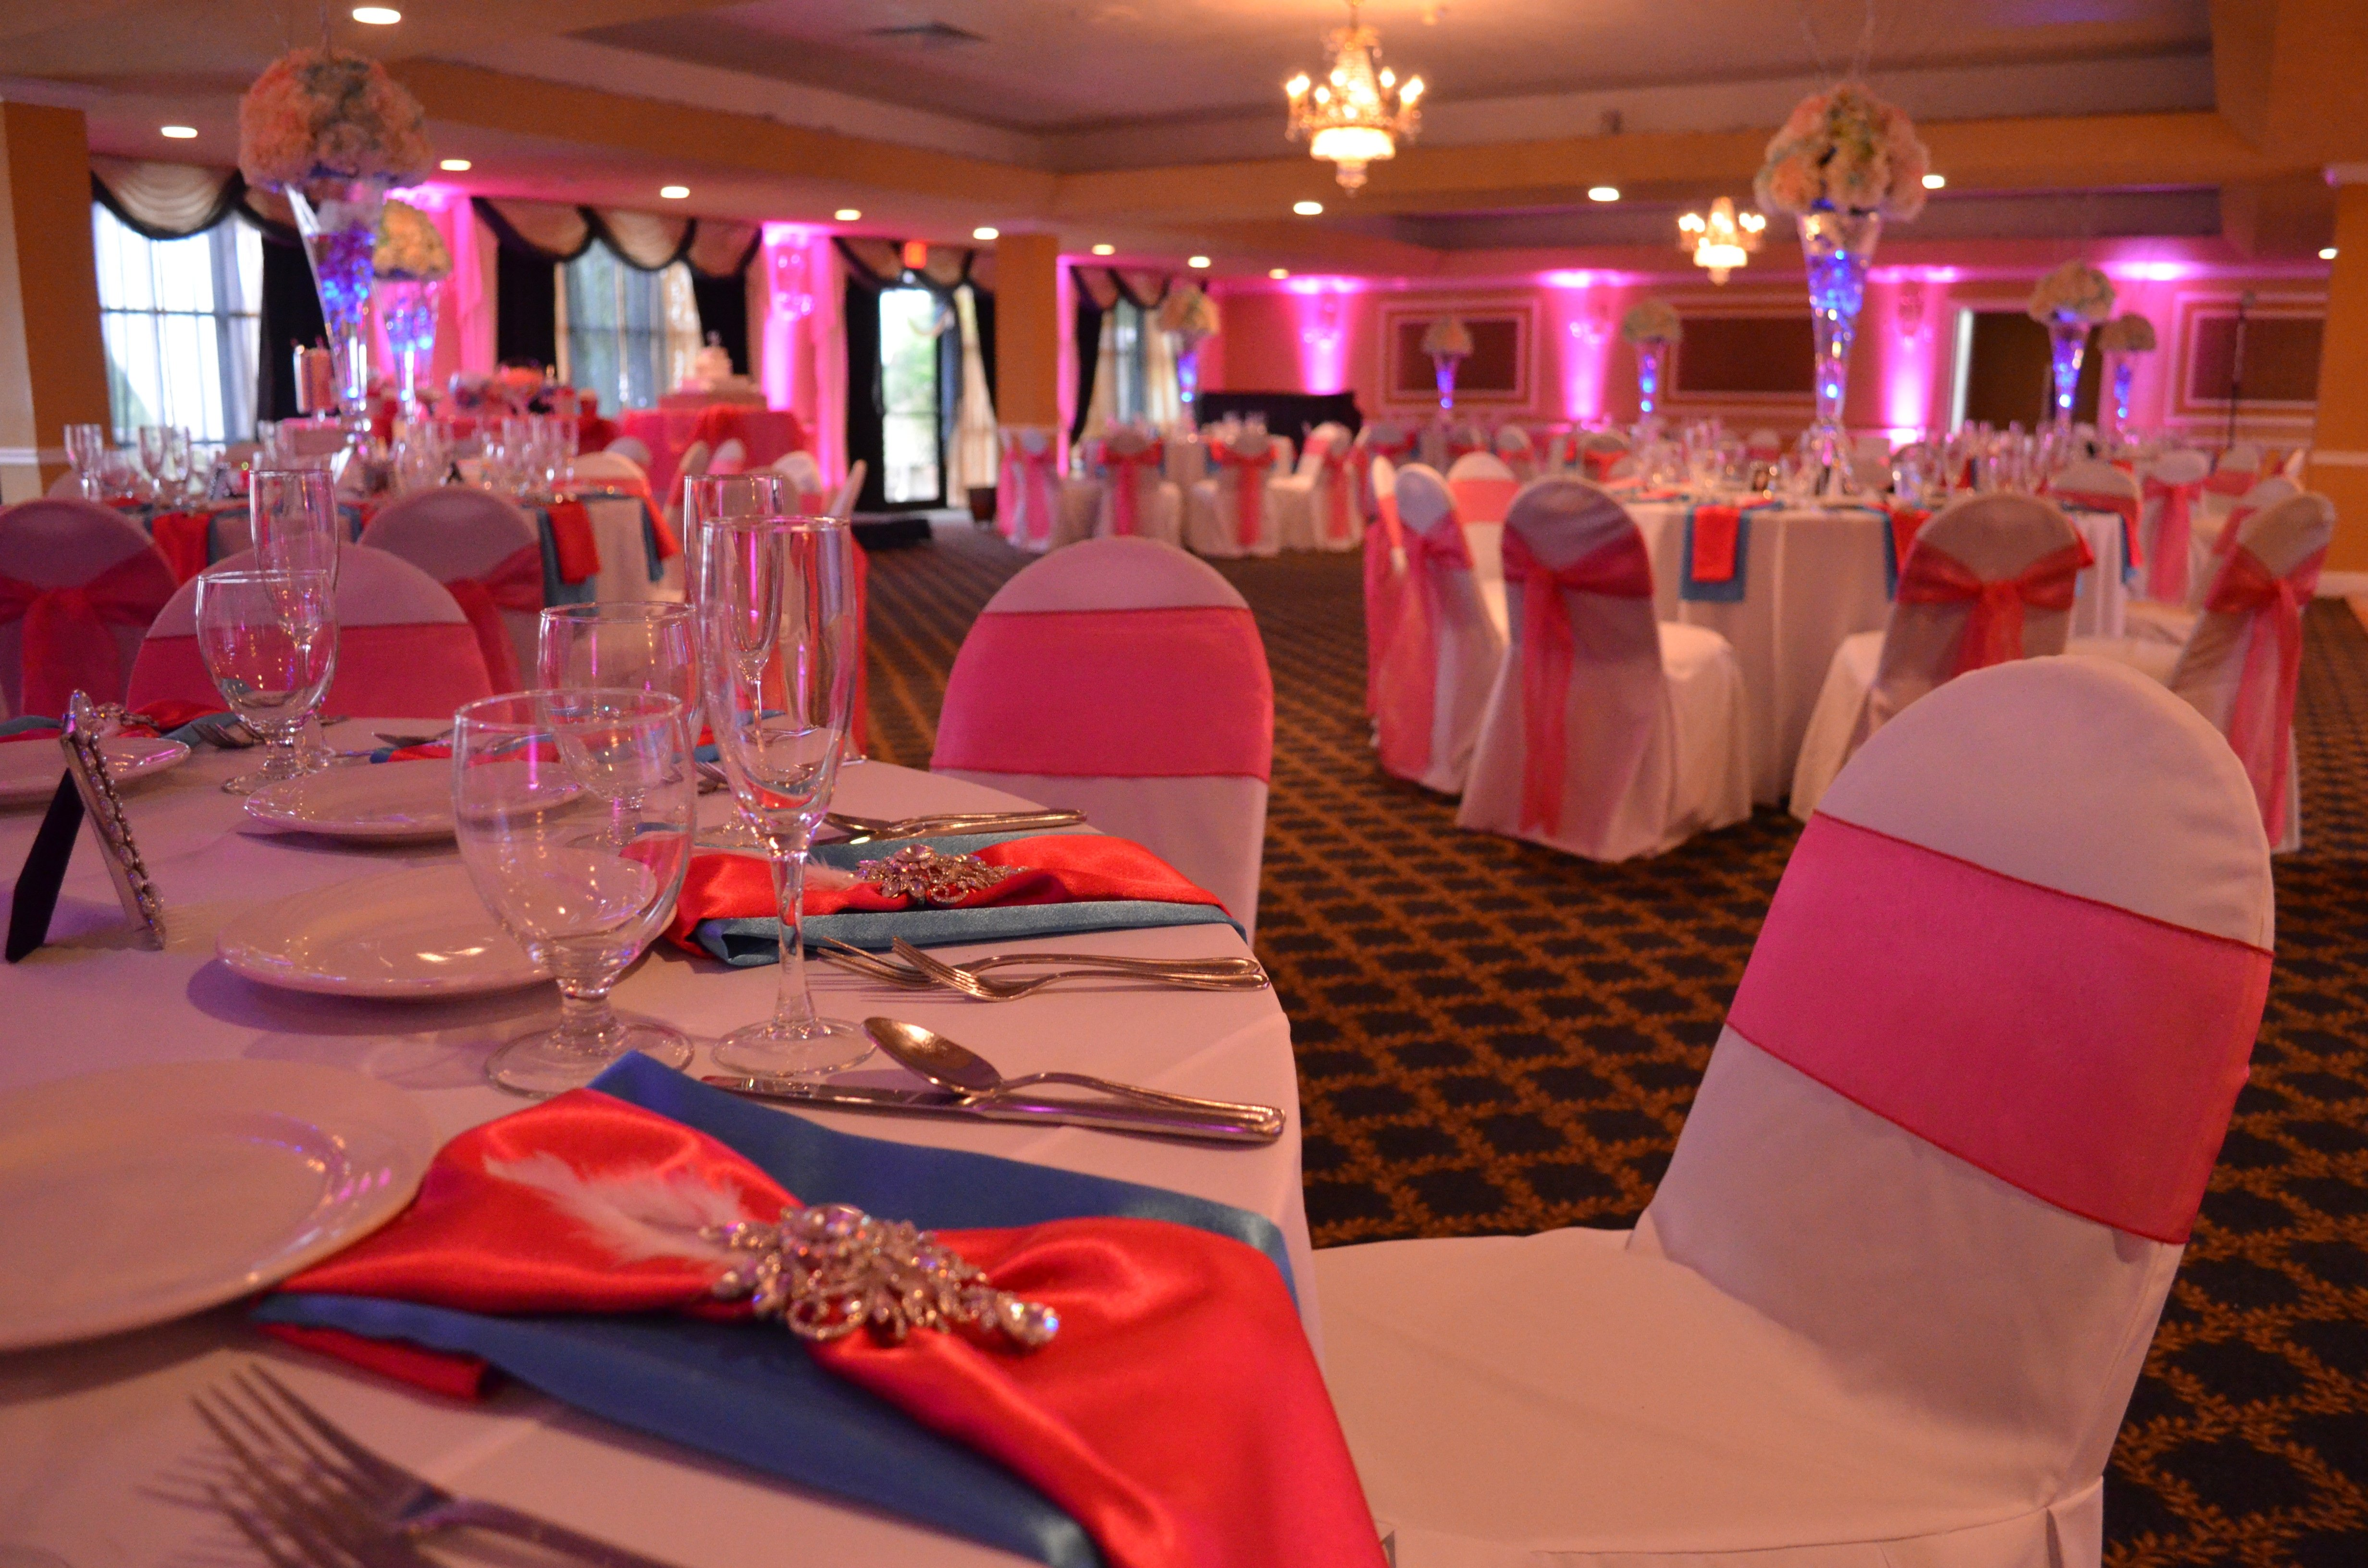 10 Most Recommended 16 Birthday Party Ideas For Girls banquet halls in miami janeen sweet 16th 2021